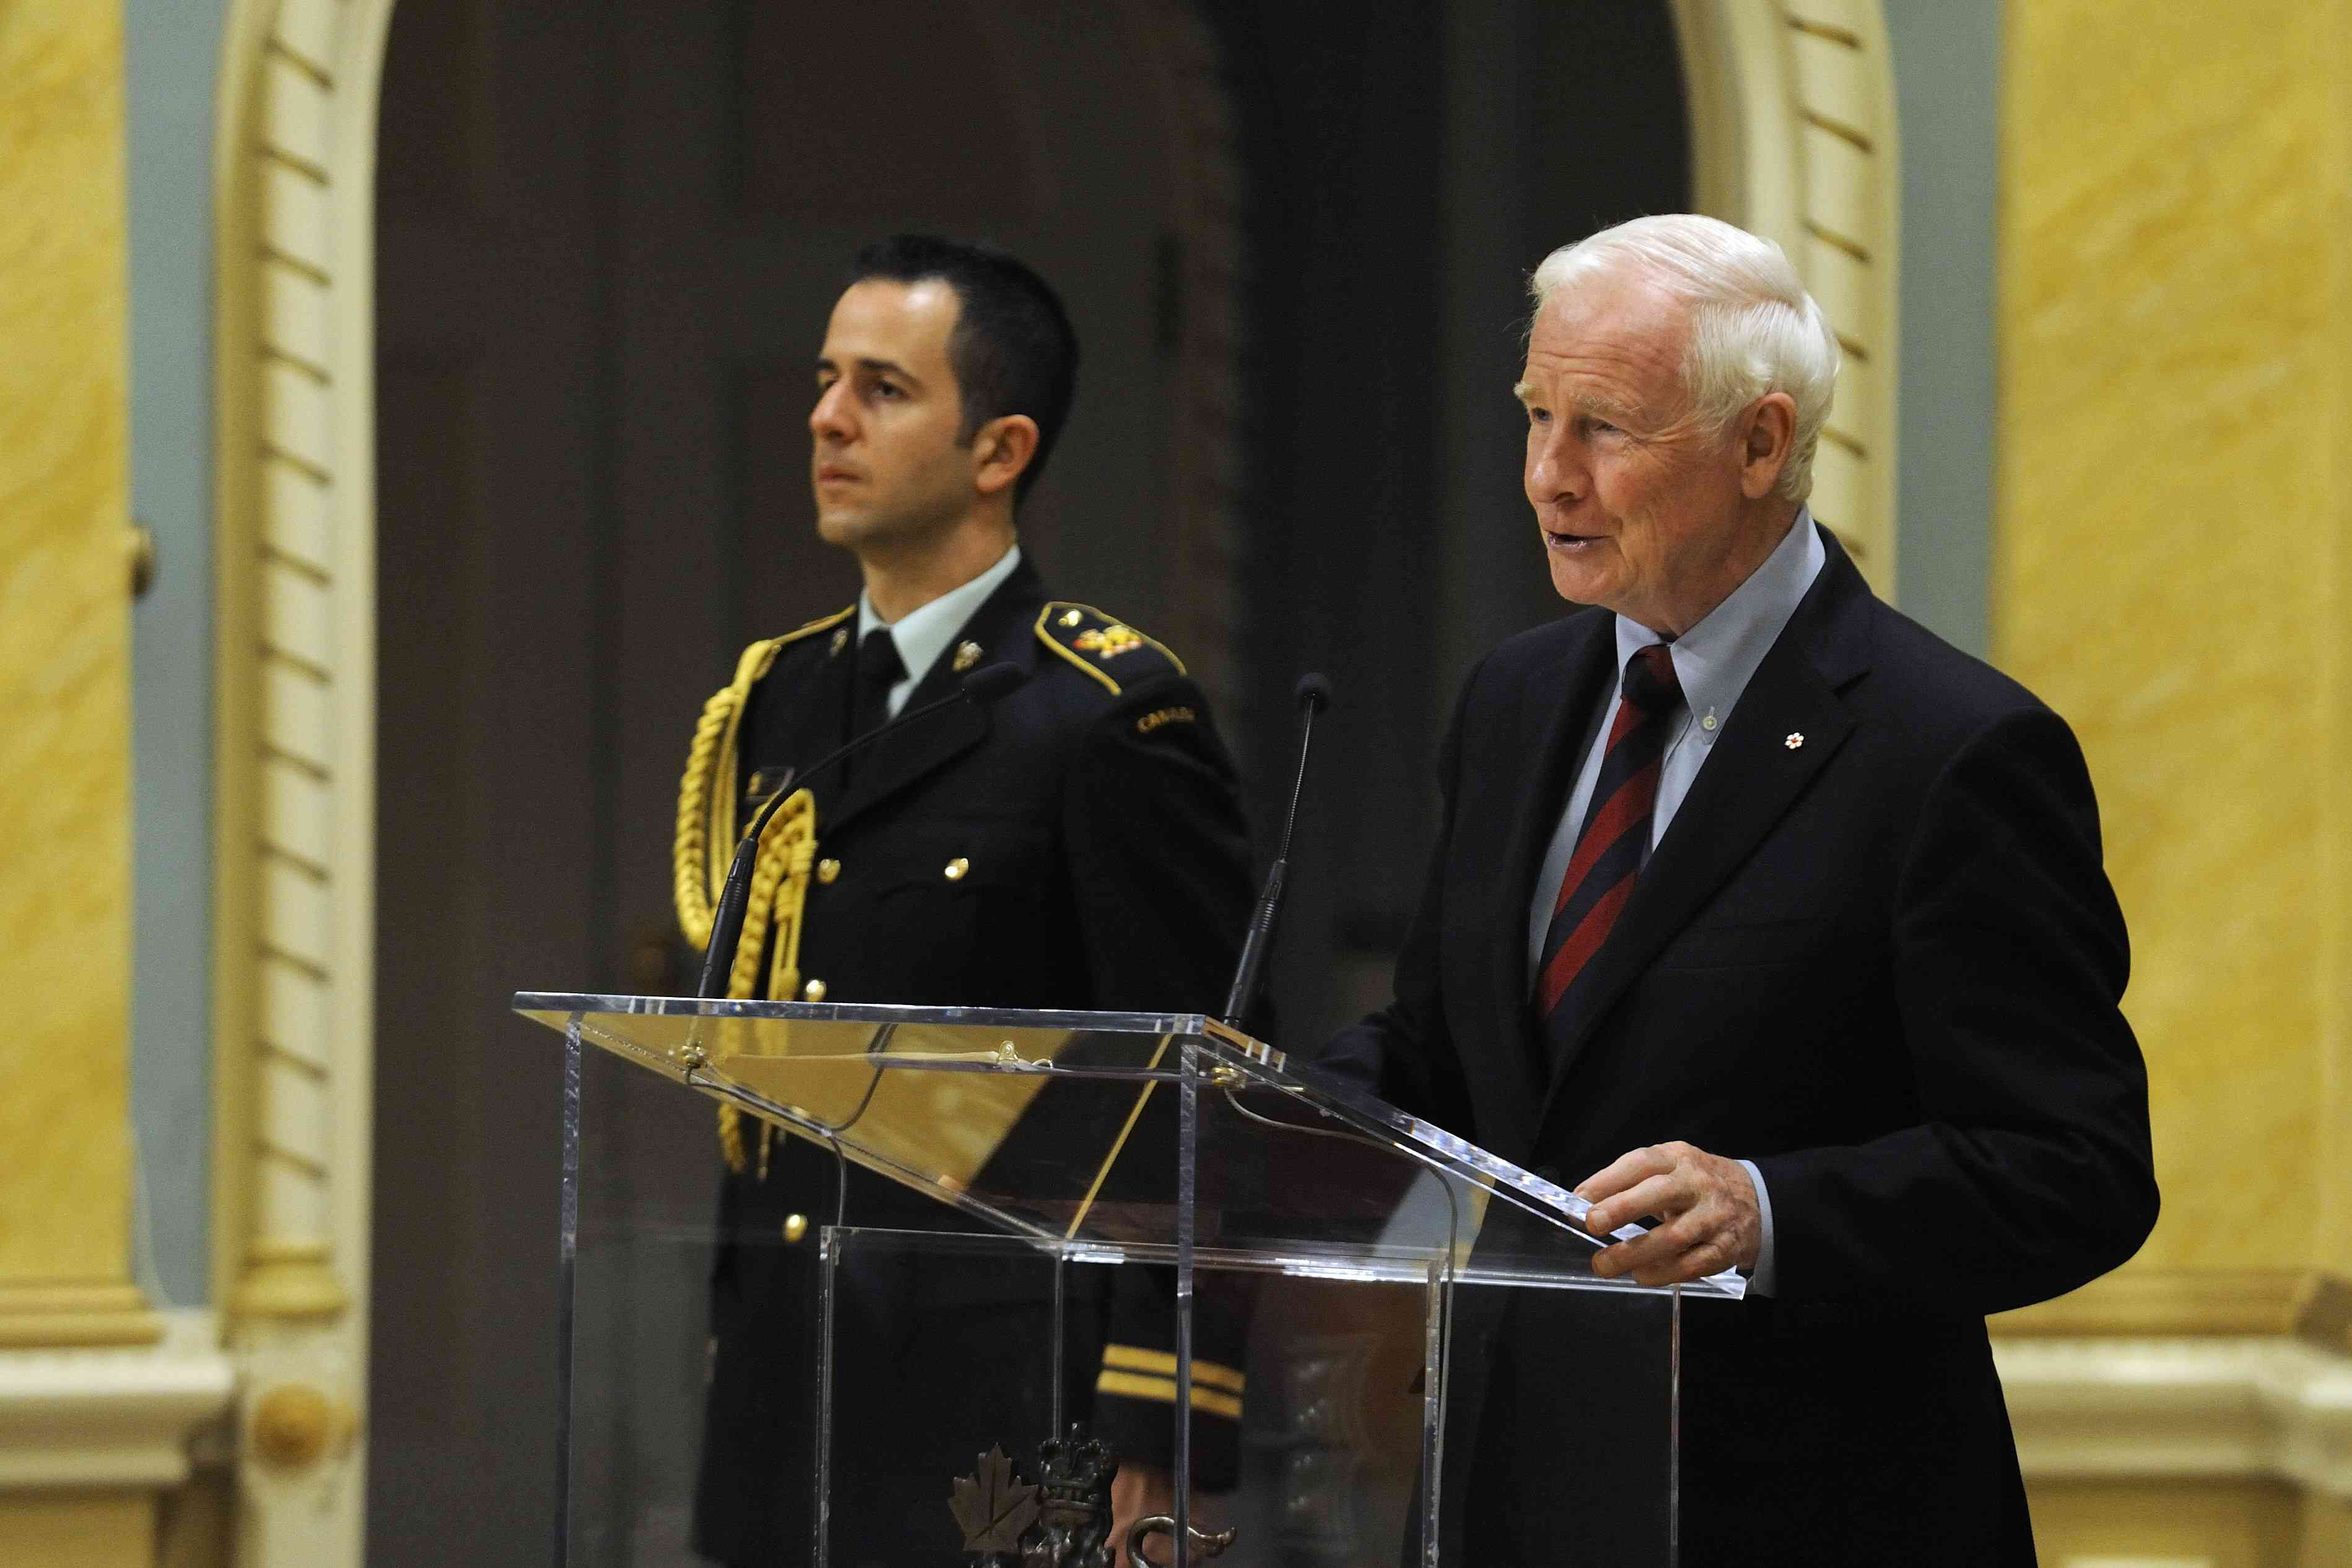 """Each of you represents the people of your respective nations, and you are here to communicate and work with Canadians in the common cause of building a smarter, more caring world,"" said His Excellency. ""And so it is with great optimism that I greet you today."""